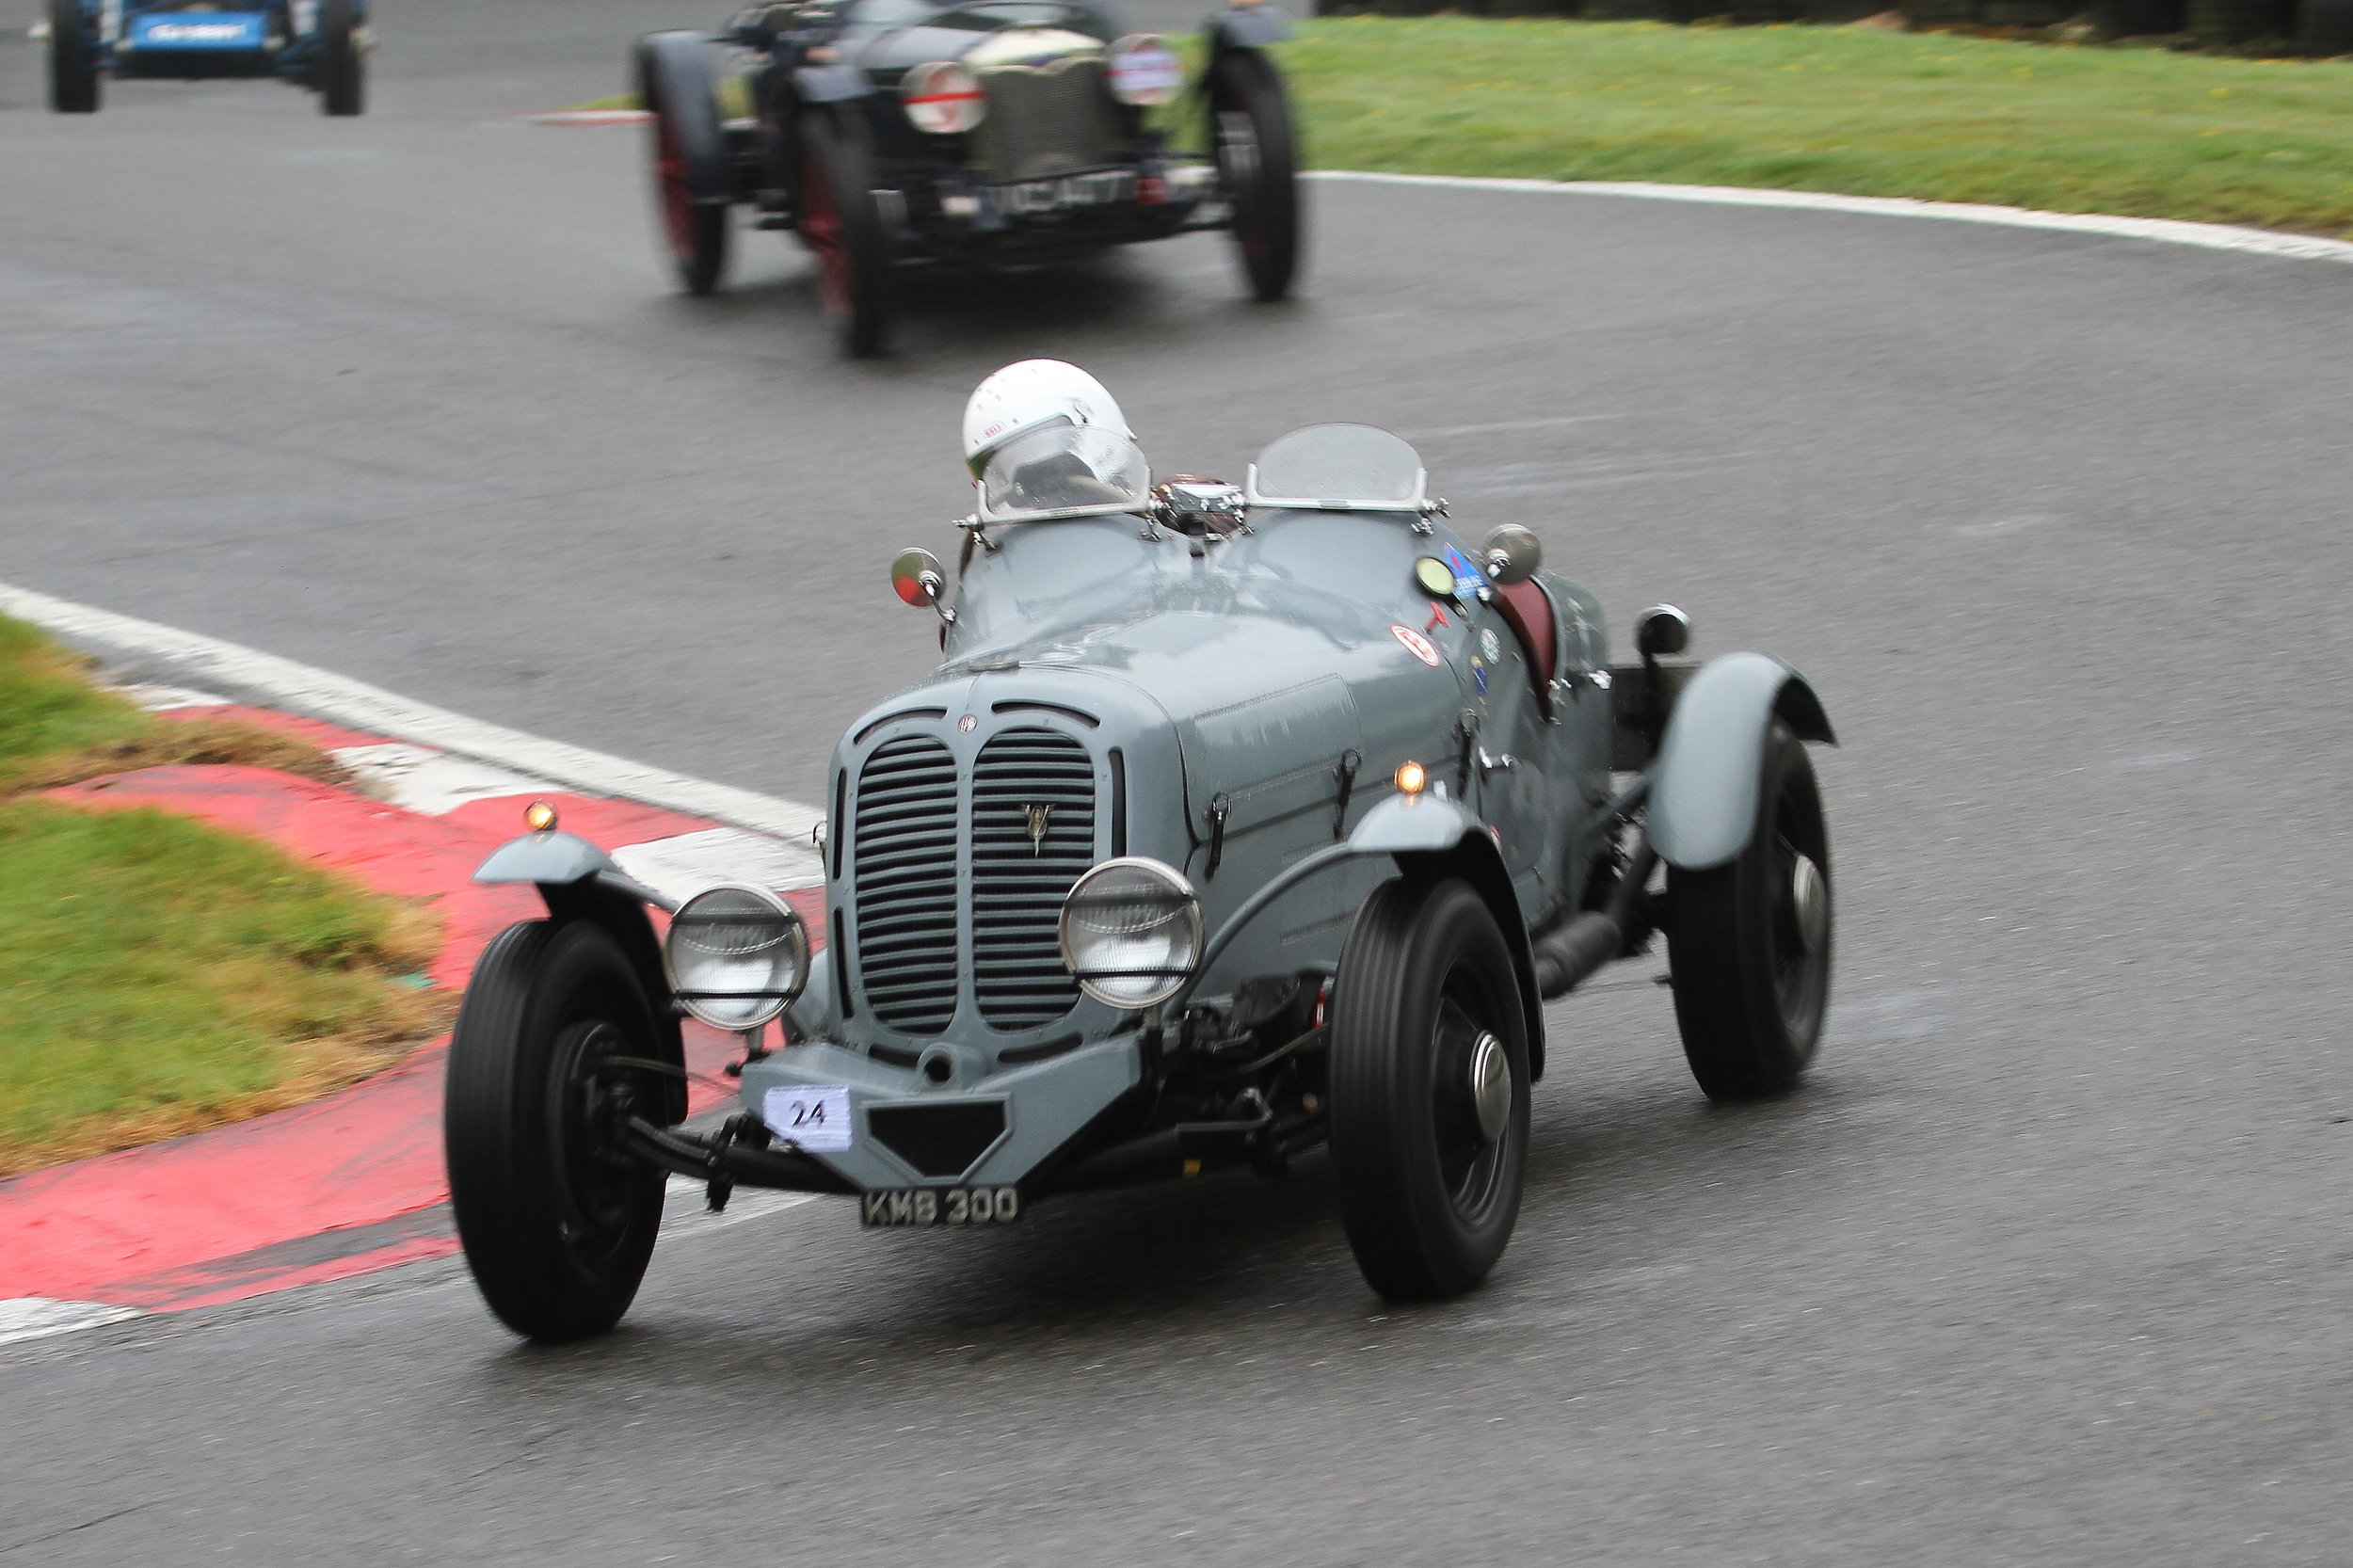 Brett (Ballamy Ford) followed by the Riley Brooklands of Standing and Potter at the foot of the 'Mountain': Stefanie Broch